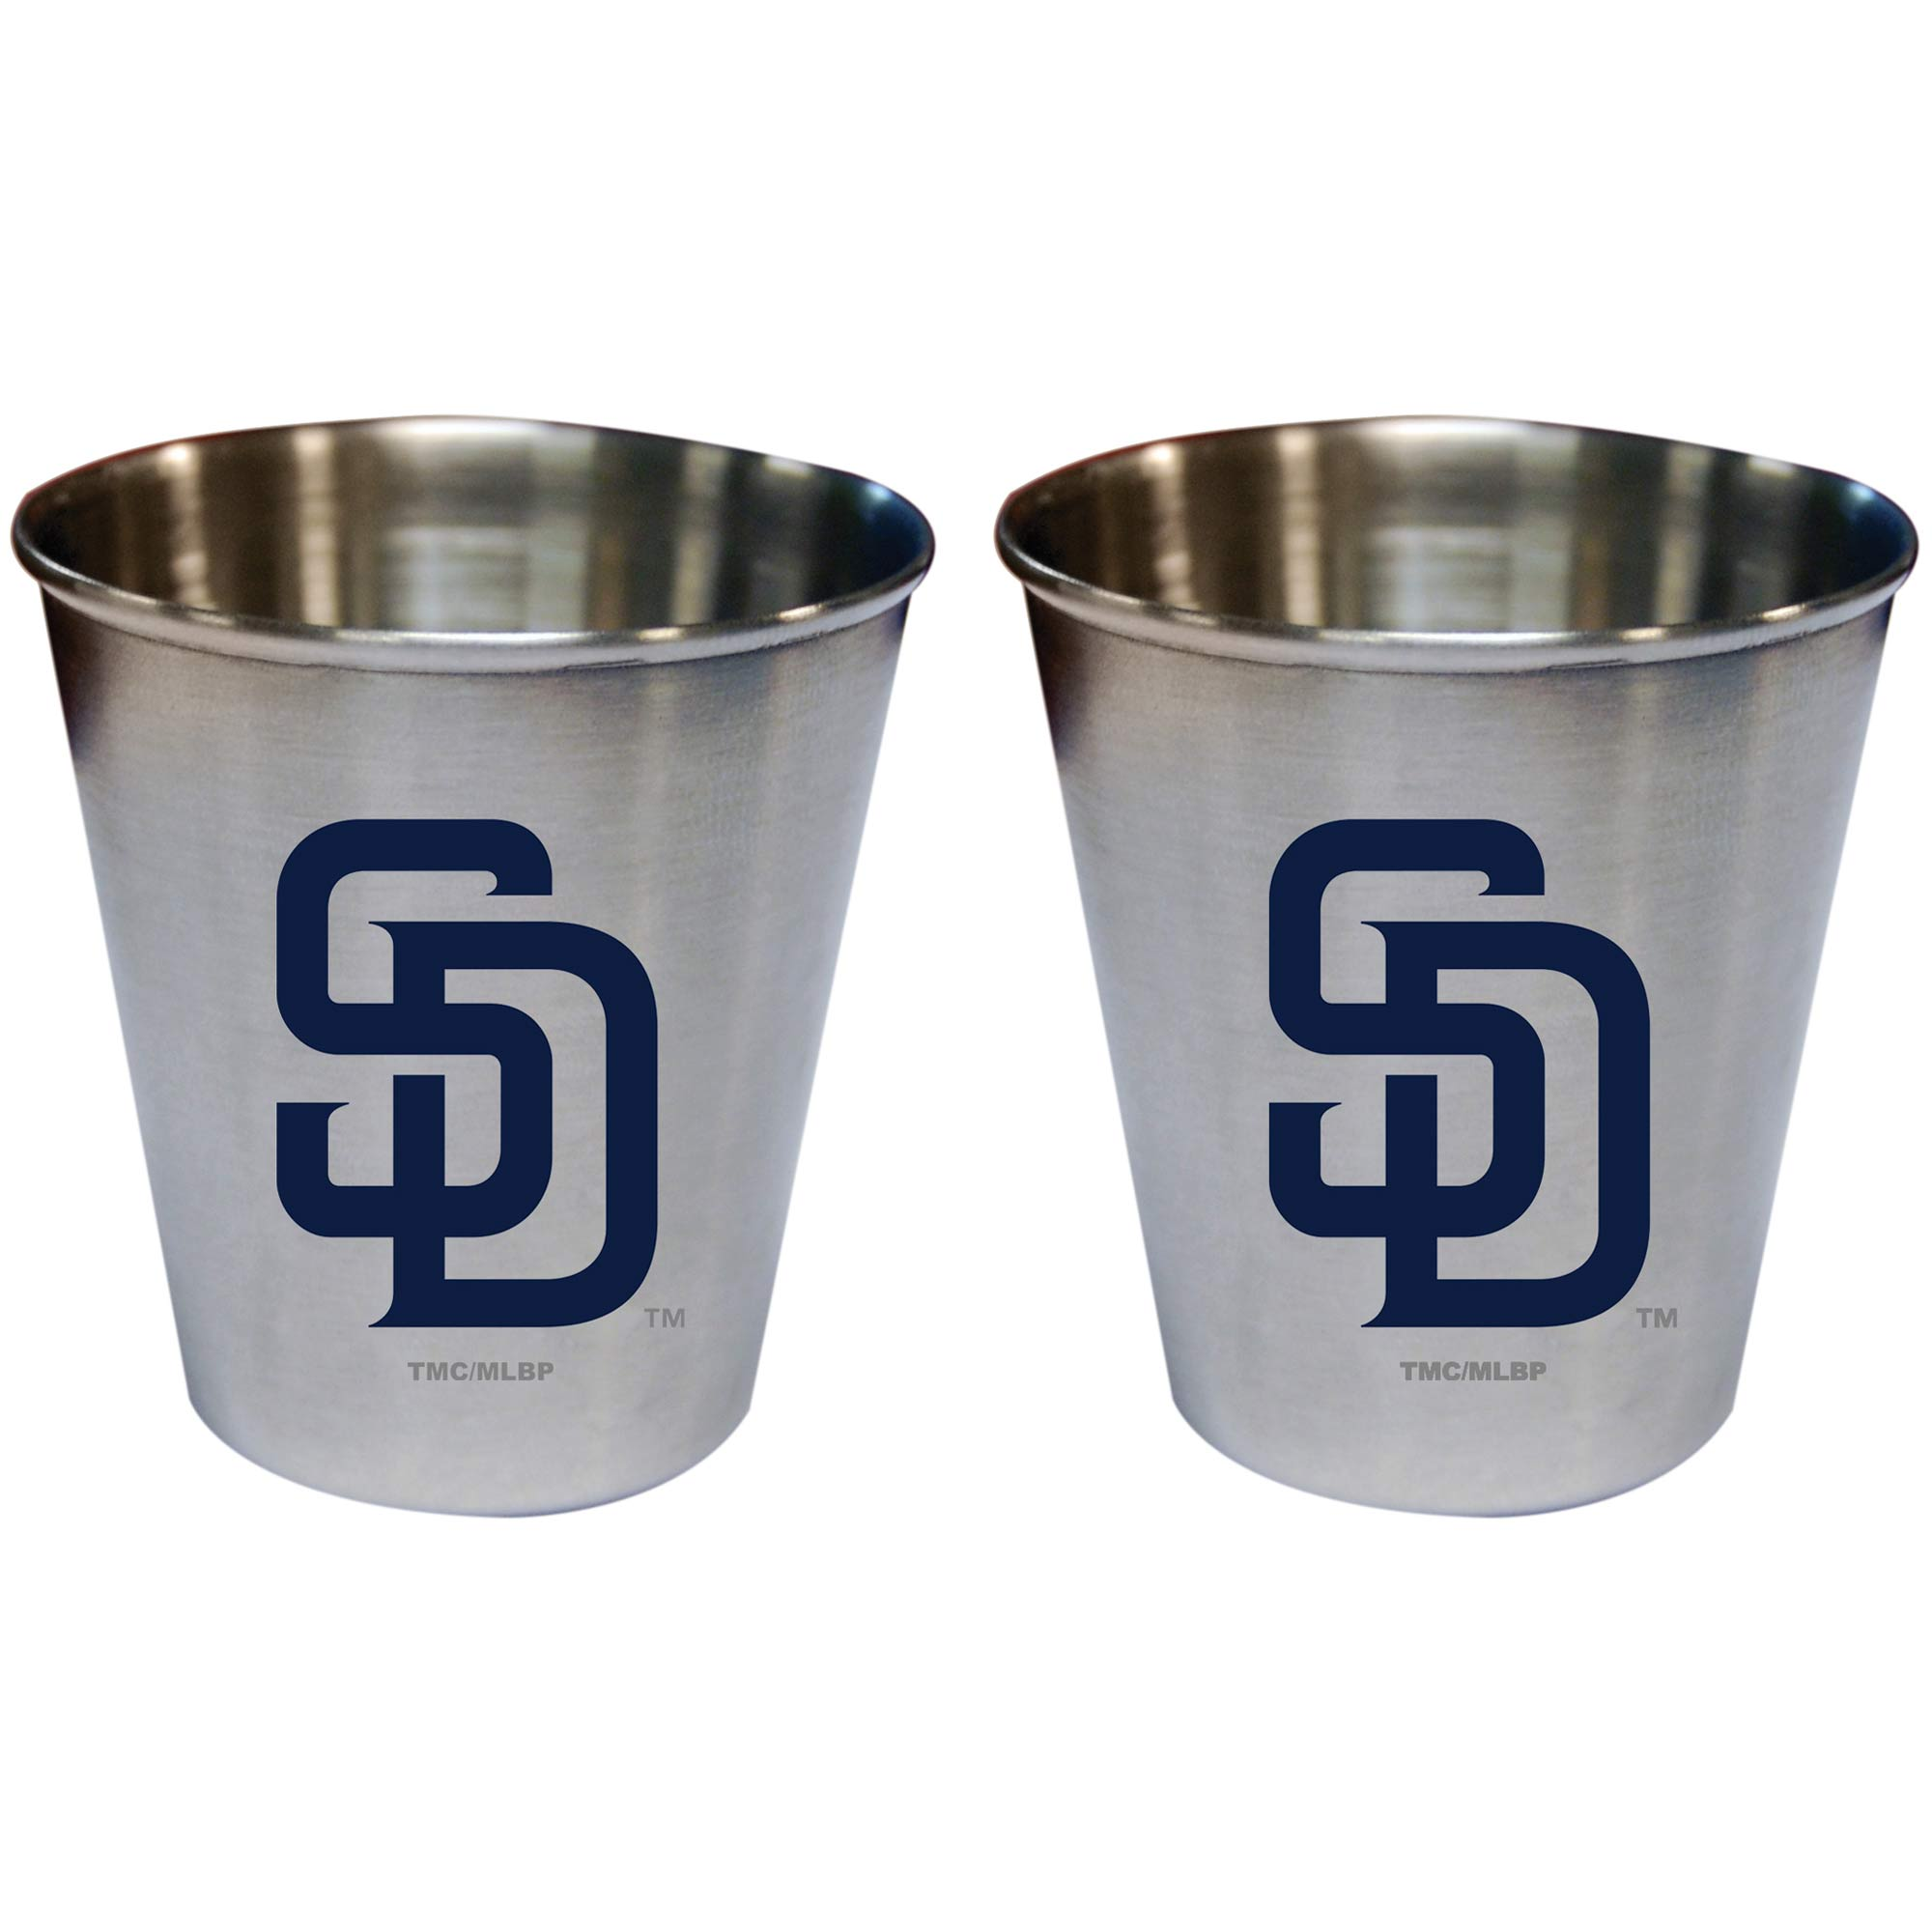 San Diego Padres 2oz. Stainless Steel Collector Cups Two-Pack Set - No Size